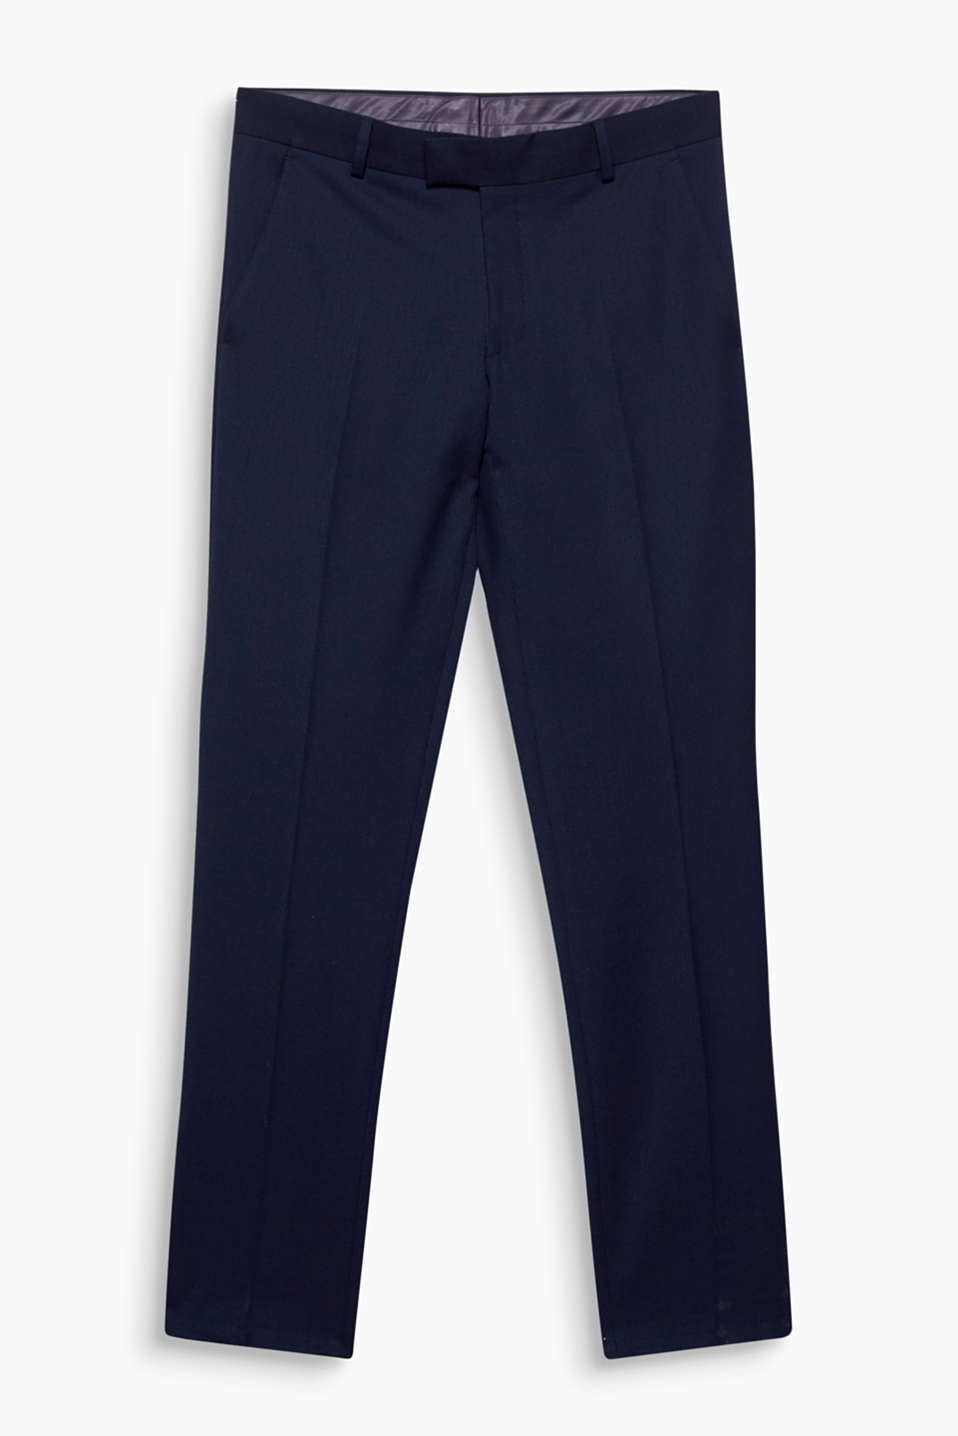 Suit trousers with a fine woven texture, made of lightweight blended fabric with a percentage of stretch